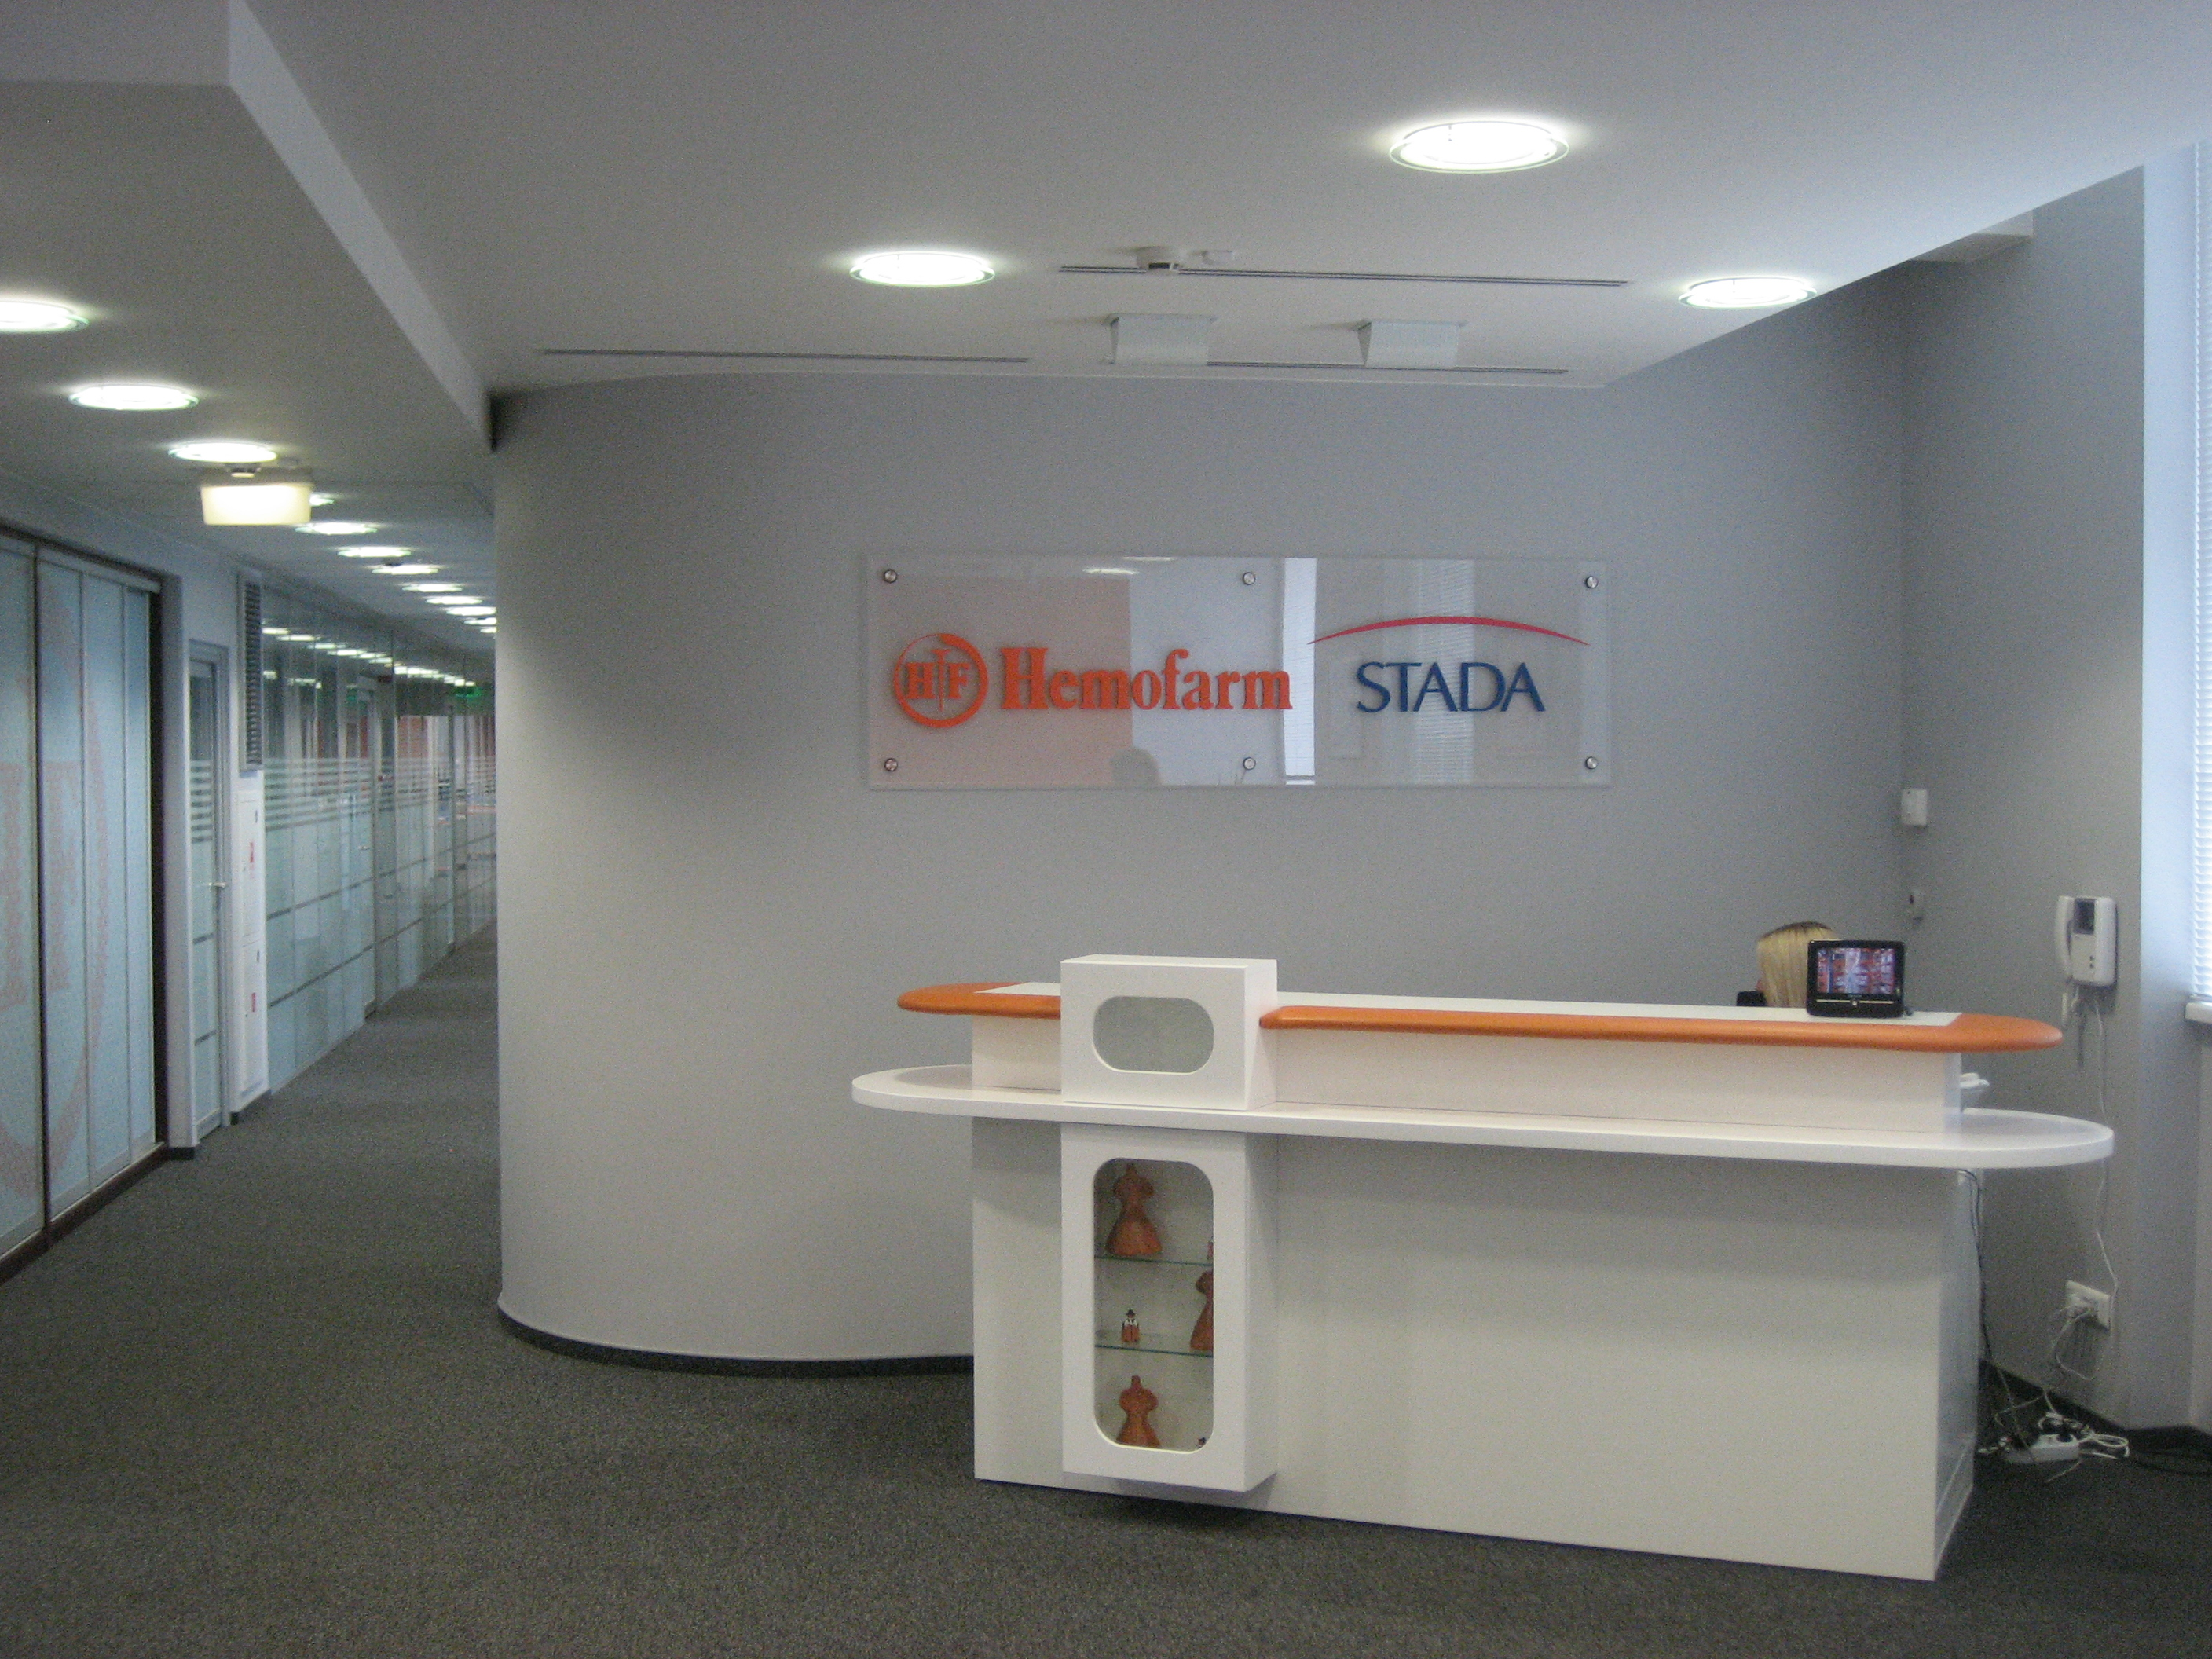 File:Hemofarm Moscow office reception 2010.jpg - Wikimedia ...